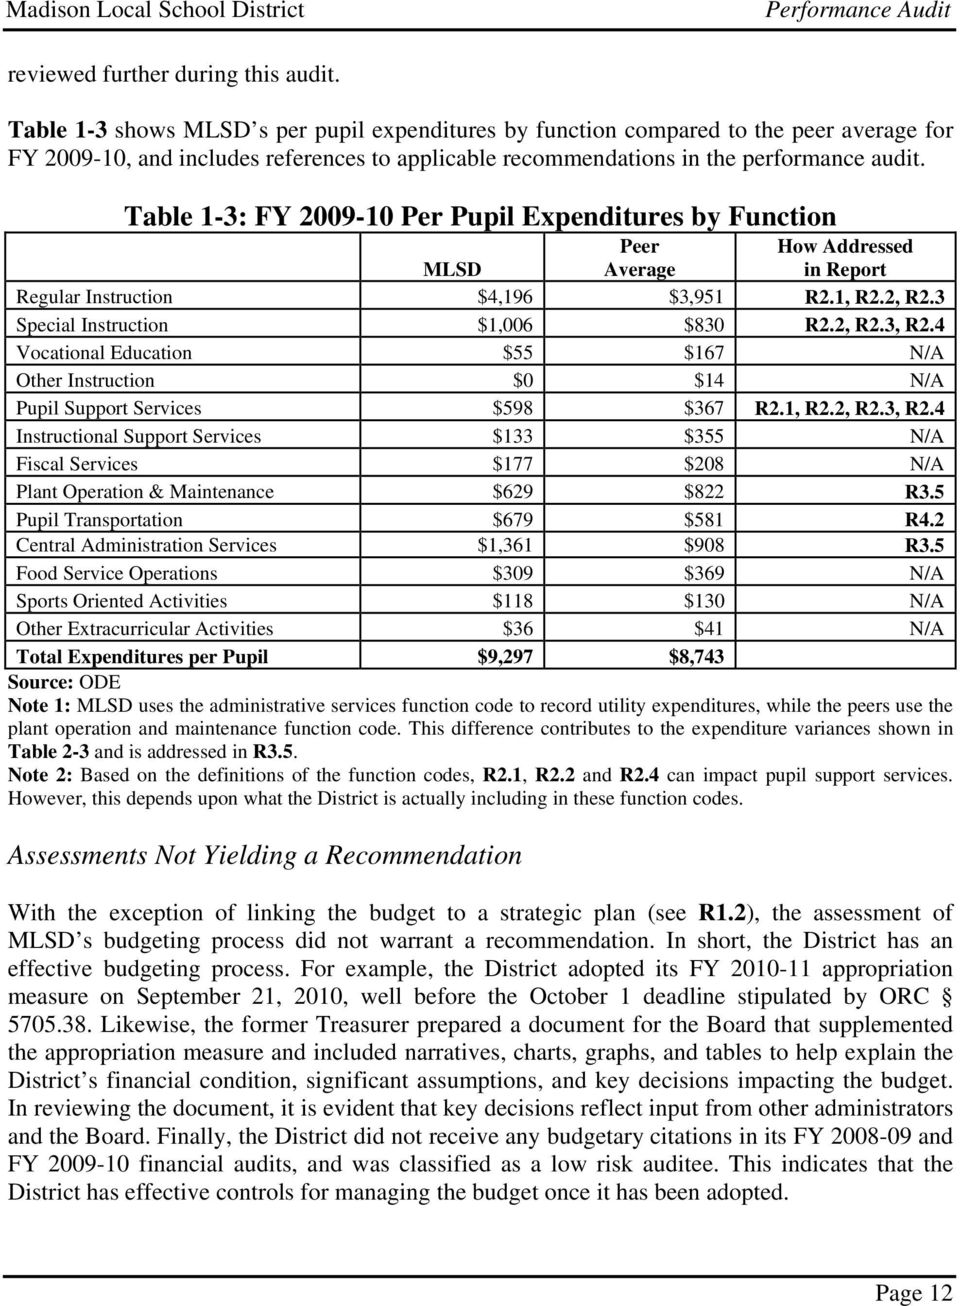 Table 1-3: FY 2009-10 Per Pupil Expenditures by Function MLSD Peer Average How Addressed in Report Regular Instruction $4,196 $3,951 R2.1, R2.2, R2.3 Special Instruction $1,006 $830 R2.2, R2.3, R2.